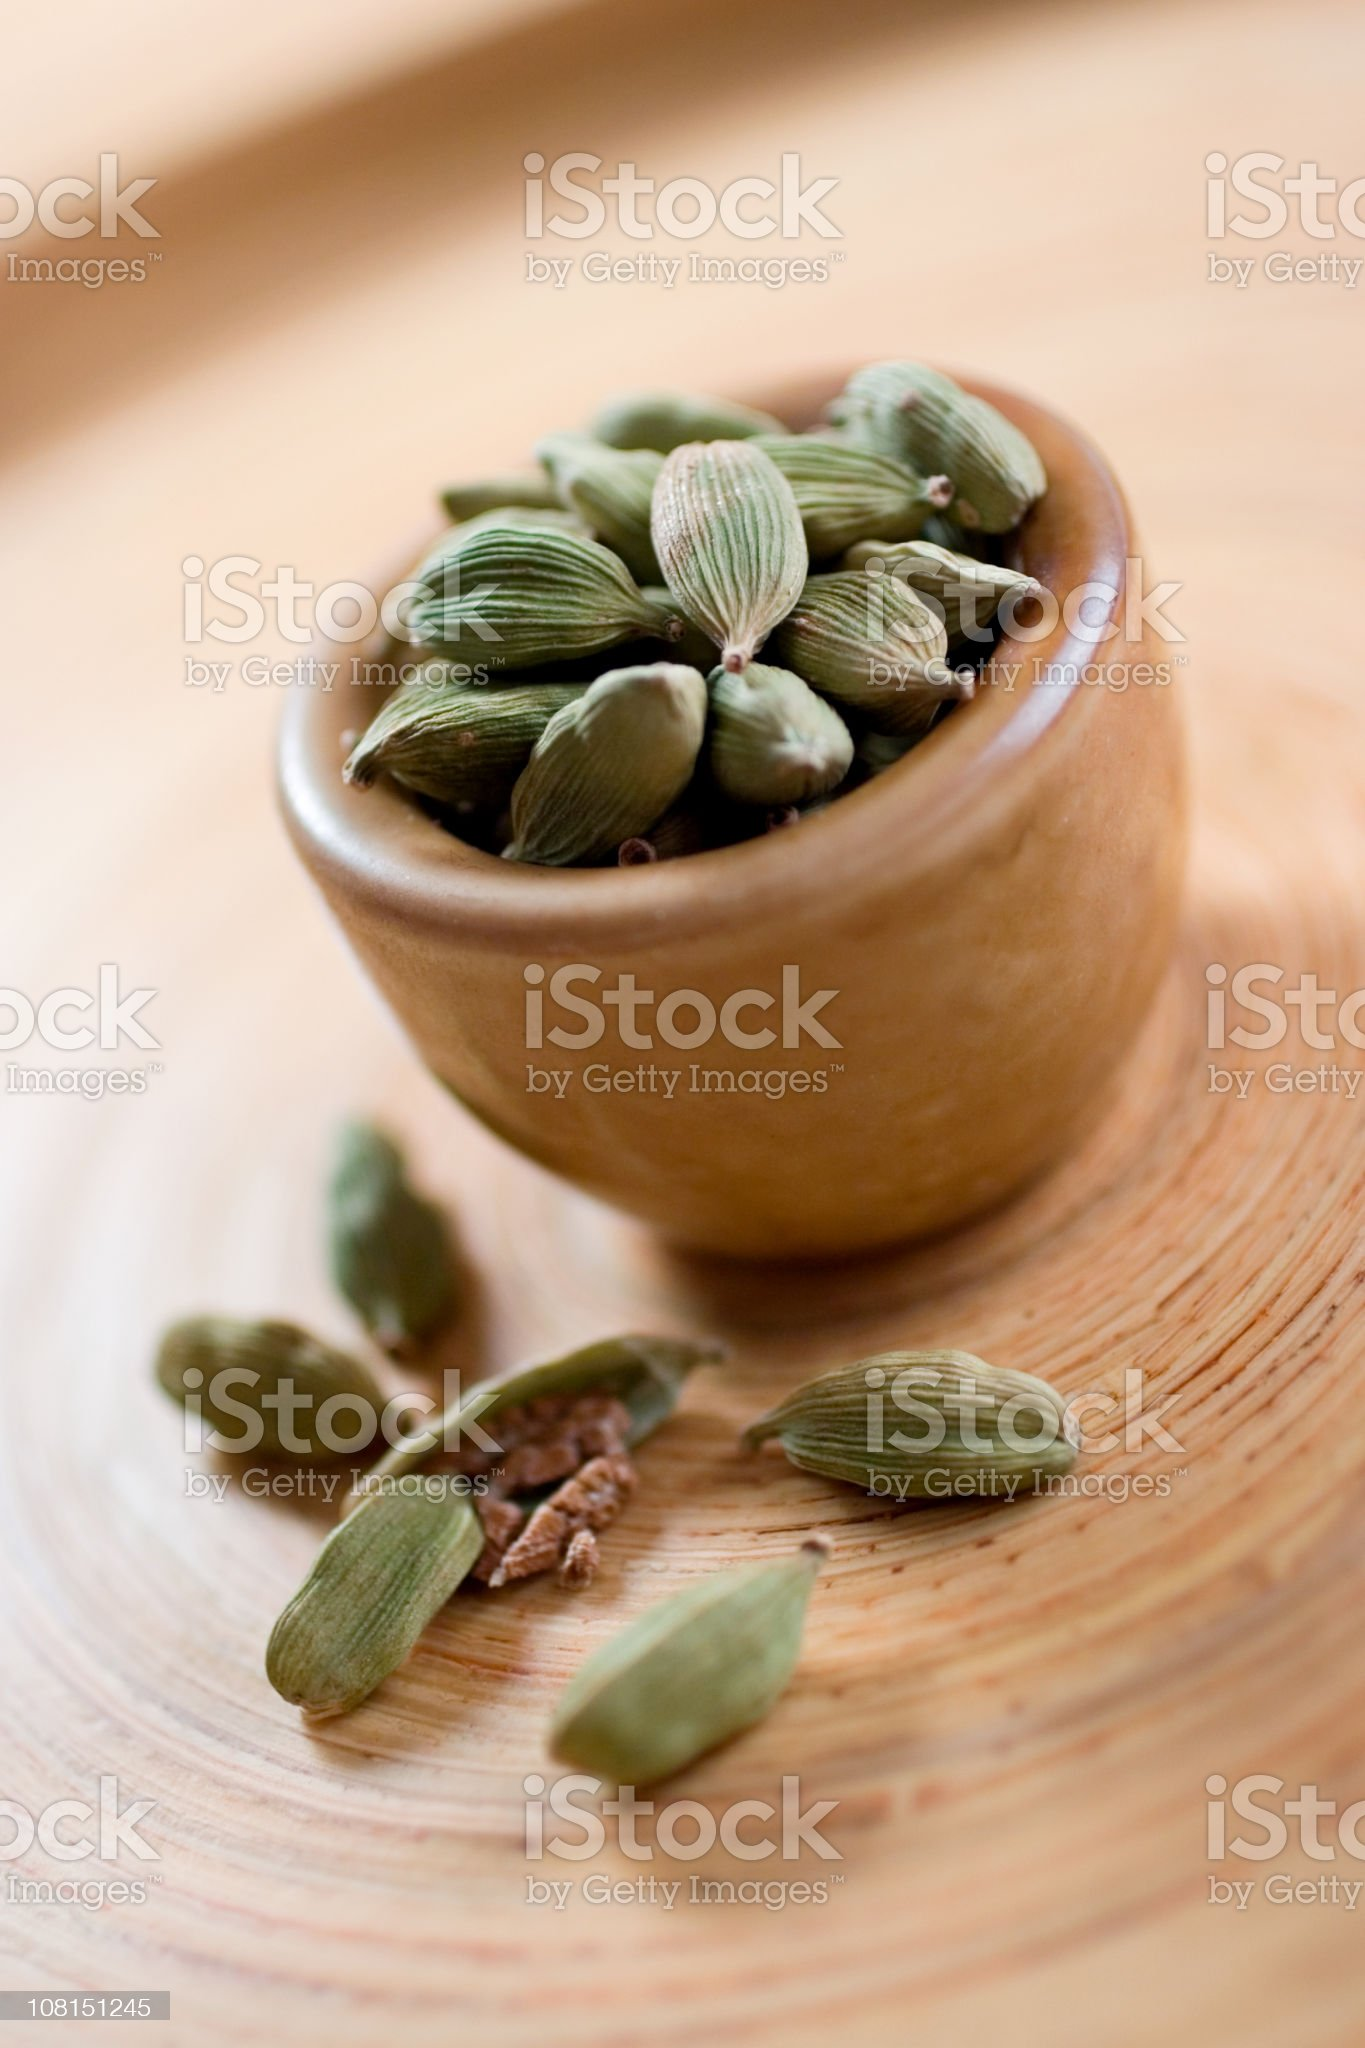 Cardamom Seeds in Bowl royalty-free stock photo